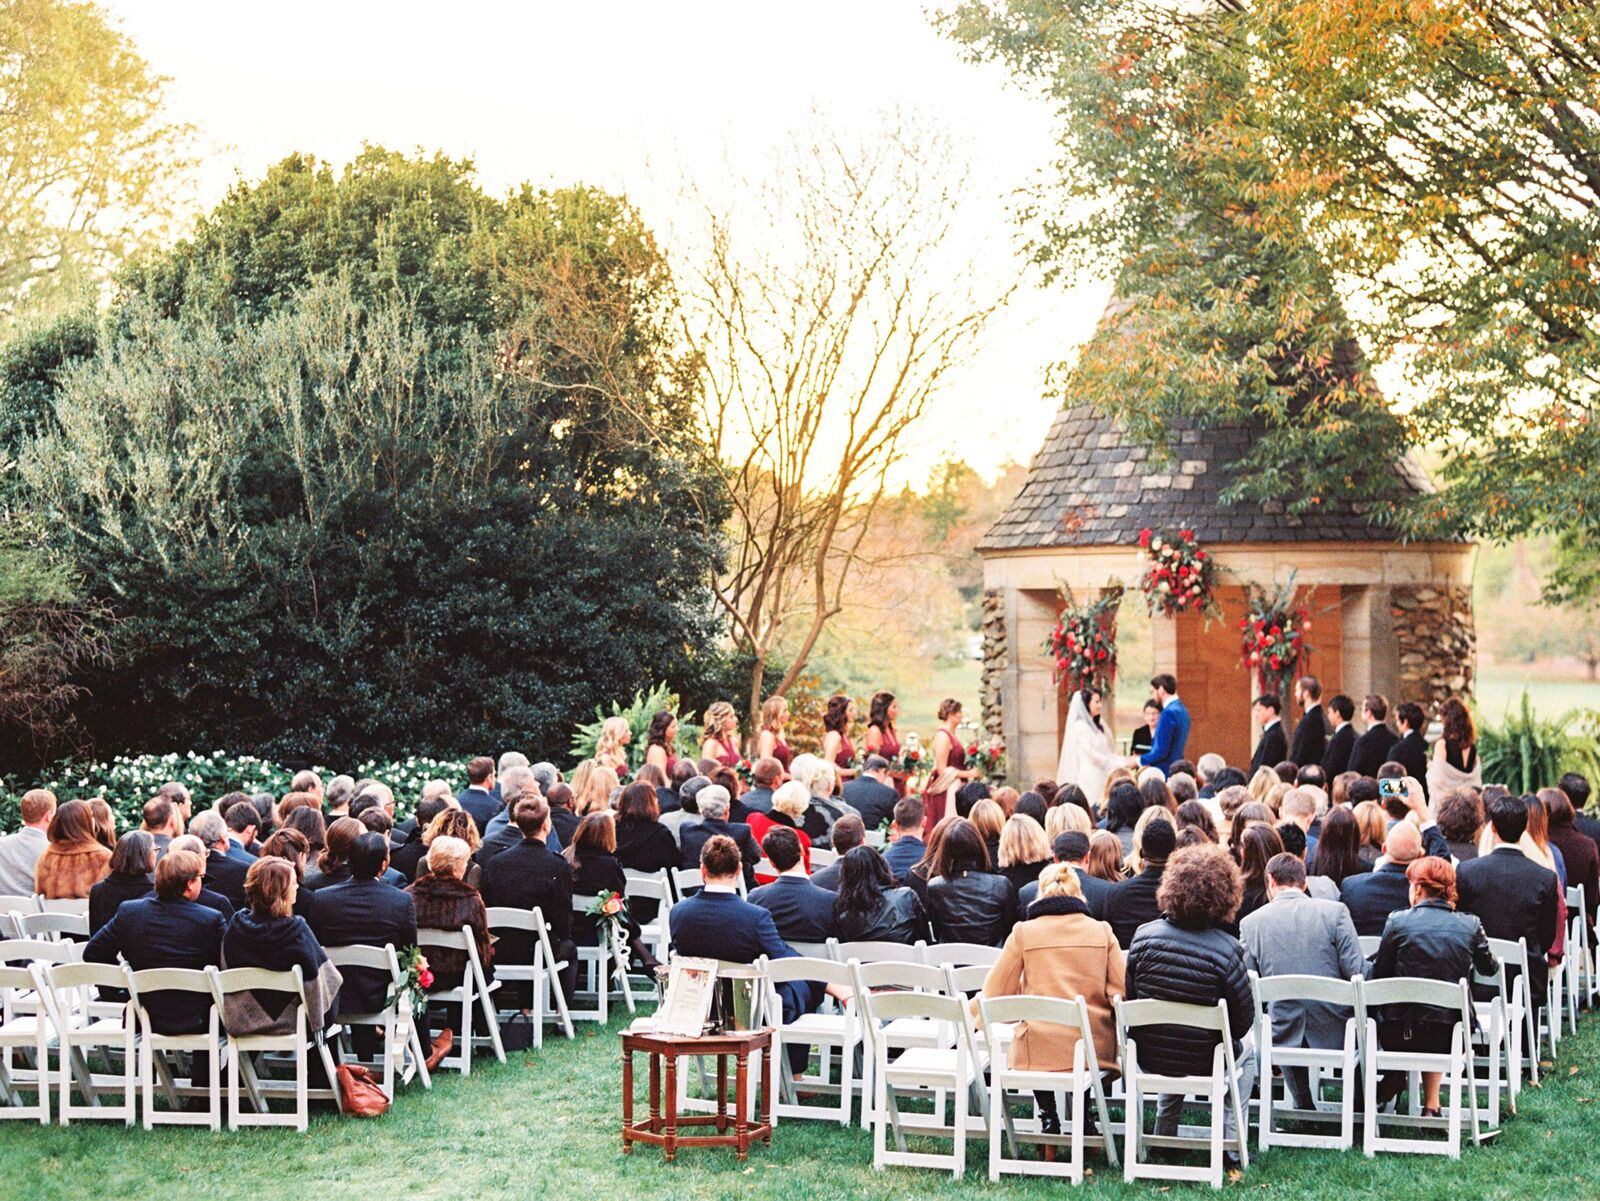 Wedding Ceremony Seating Basics Where To Seat Guests At Ceremony